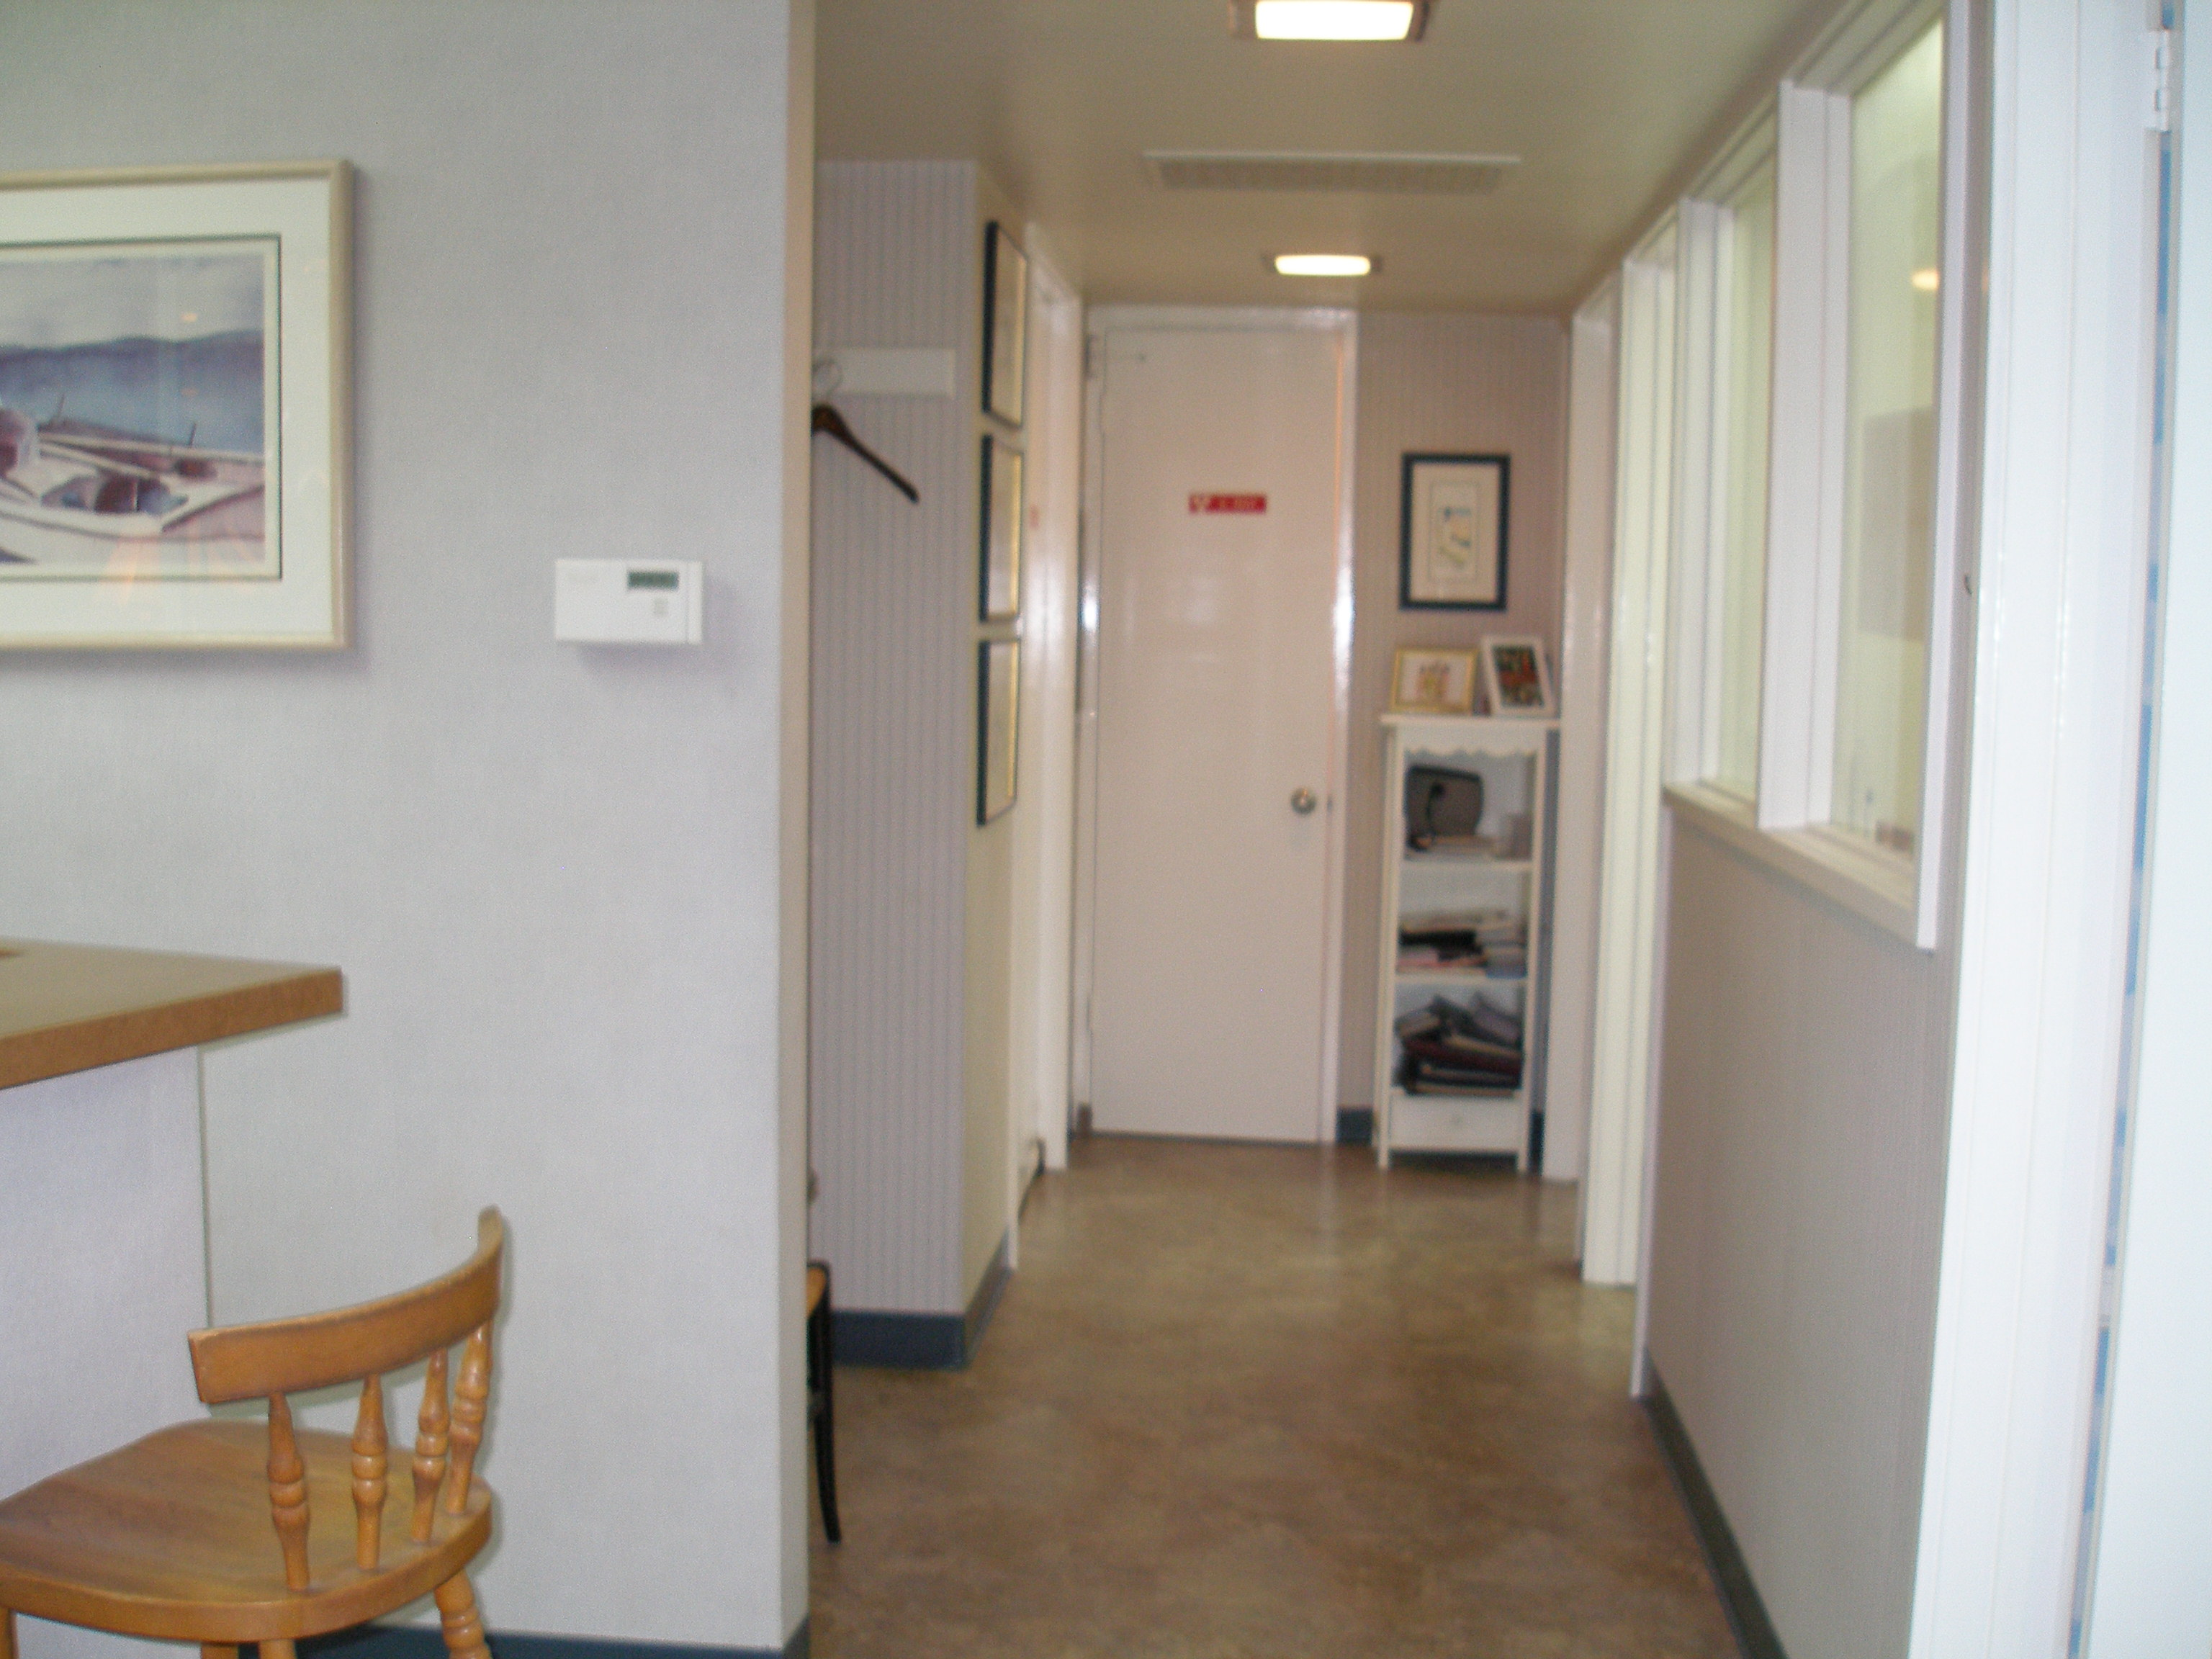 Cosmetic Dentistry, Dr. James N. Angelos, Hallway2